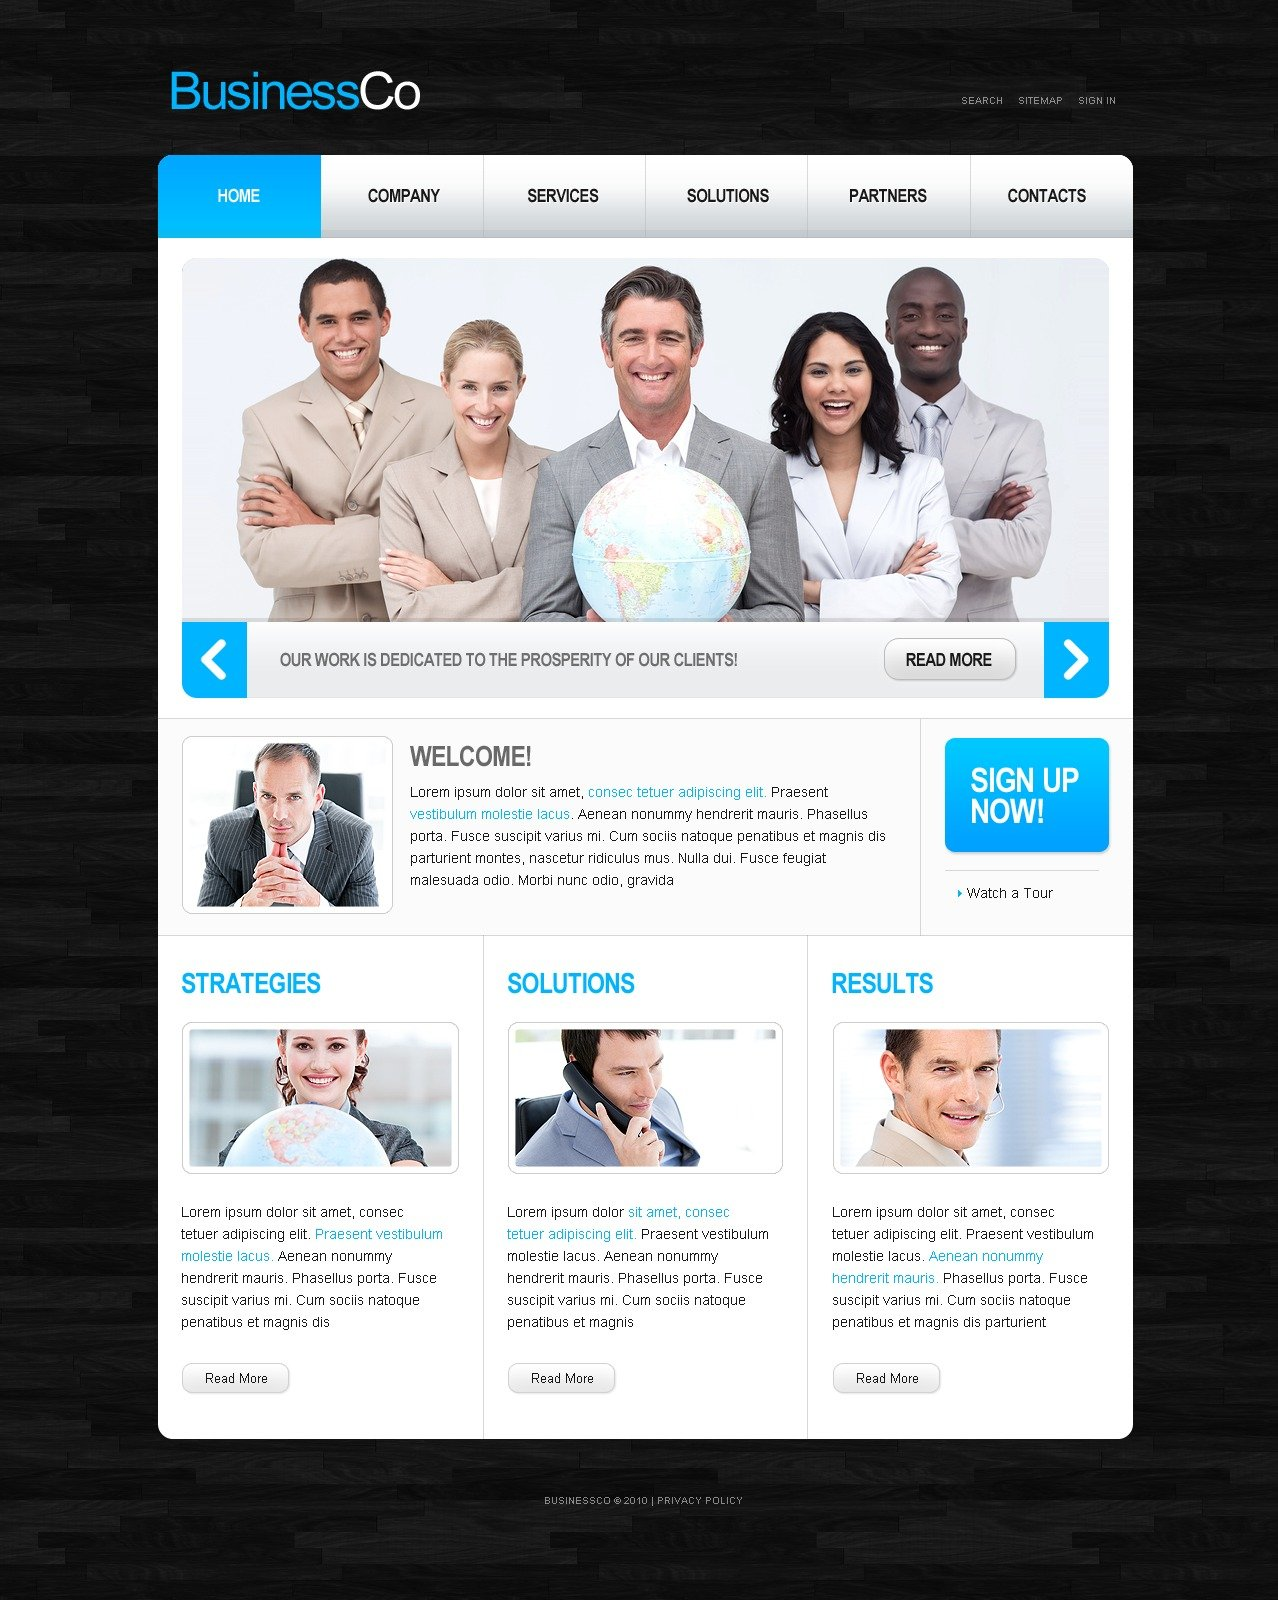 The Business Company PSD Design 54167, one of the best PSD templates of its kind (business, flash 8, wide), also known as business company PSD template, corporate solutions PSD template, innovations PSD template, contacts PSD template, service PSD template, support PSD template, information dealer PSD template, stocks PSD template, team PSD template, success PSD template, money PSD template, marketing PSD template, director PSD template, manager PSD template, analytics PSD template, planning PSD template, limited PSD template, office PSD template, sales and related with business company, corporate solutions, innovations, contacts, service, support, information dealer, stocks, team, success, money, marketing, director, manager, analytics, planning, limited, office, sales, etc.